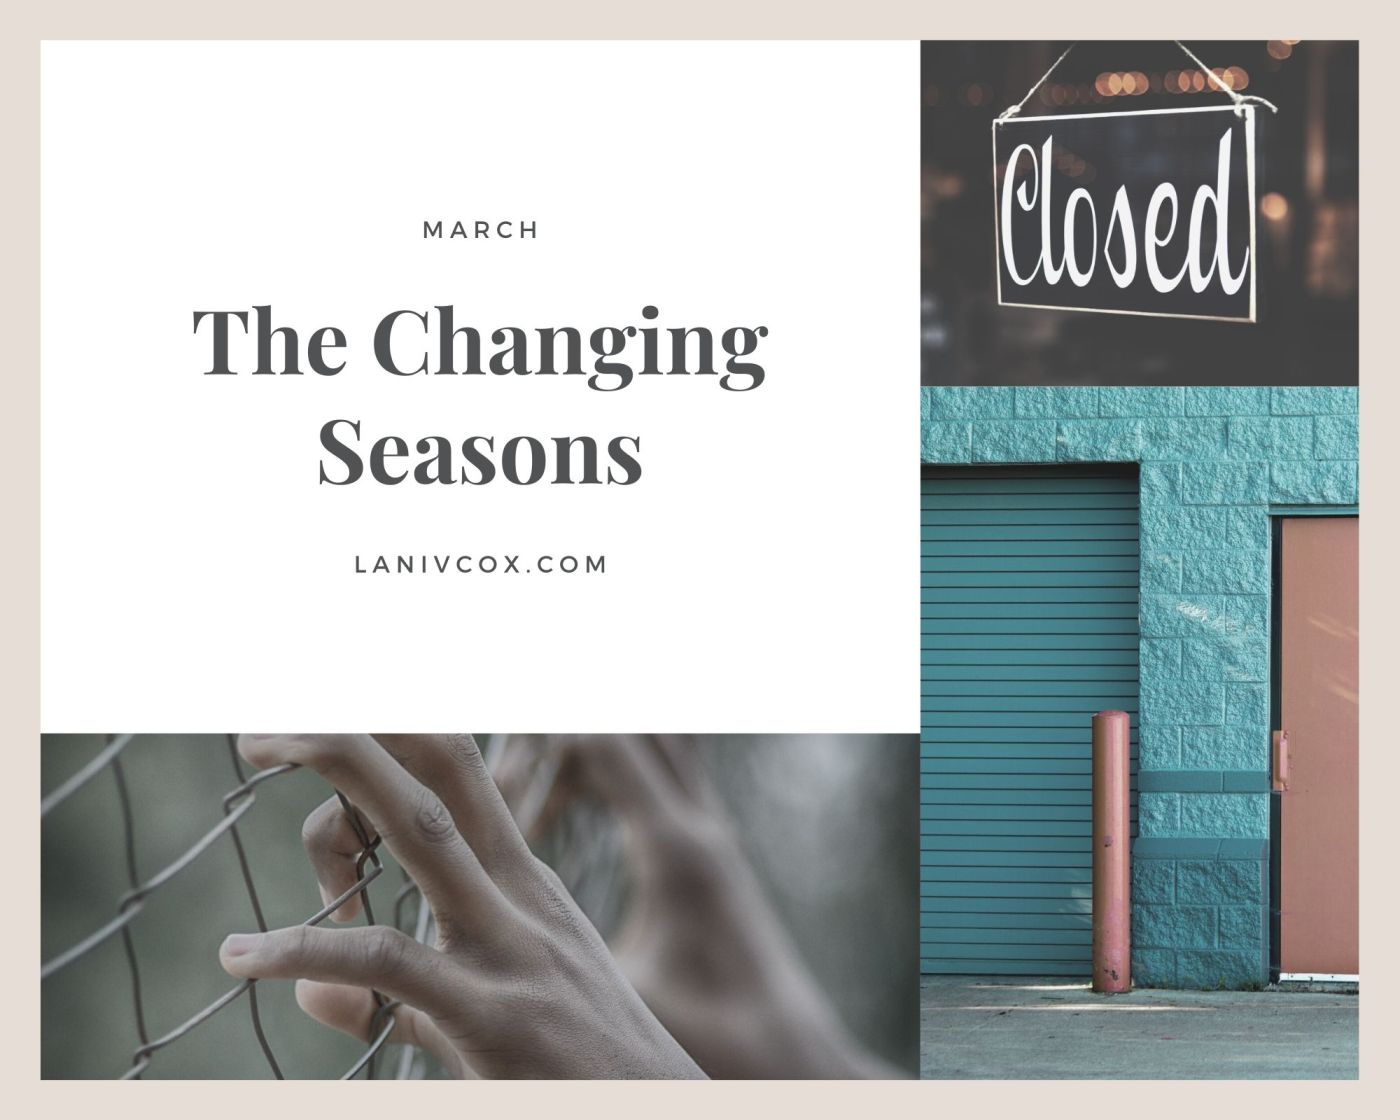 The changing seasons - march 2020